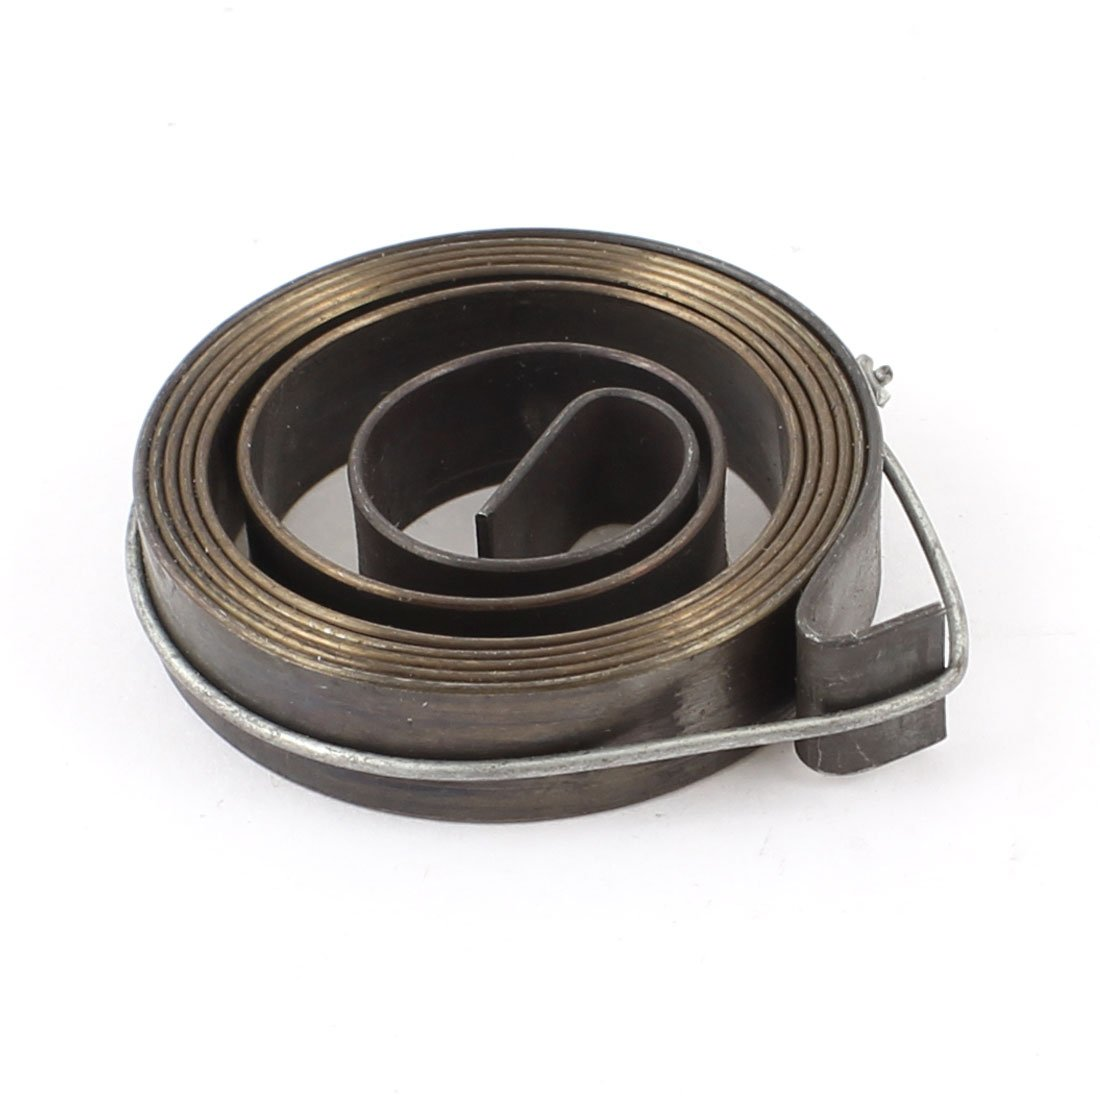 uxcell8 Drill Press Quill Feed Return Coil Spring Assembly 3.5cm x 0.8cm a13090900ux1036